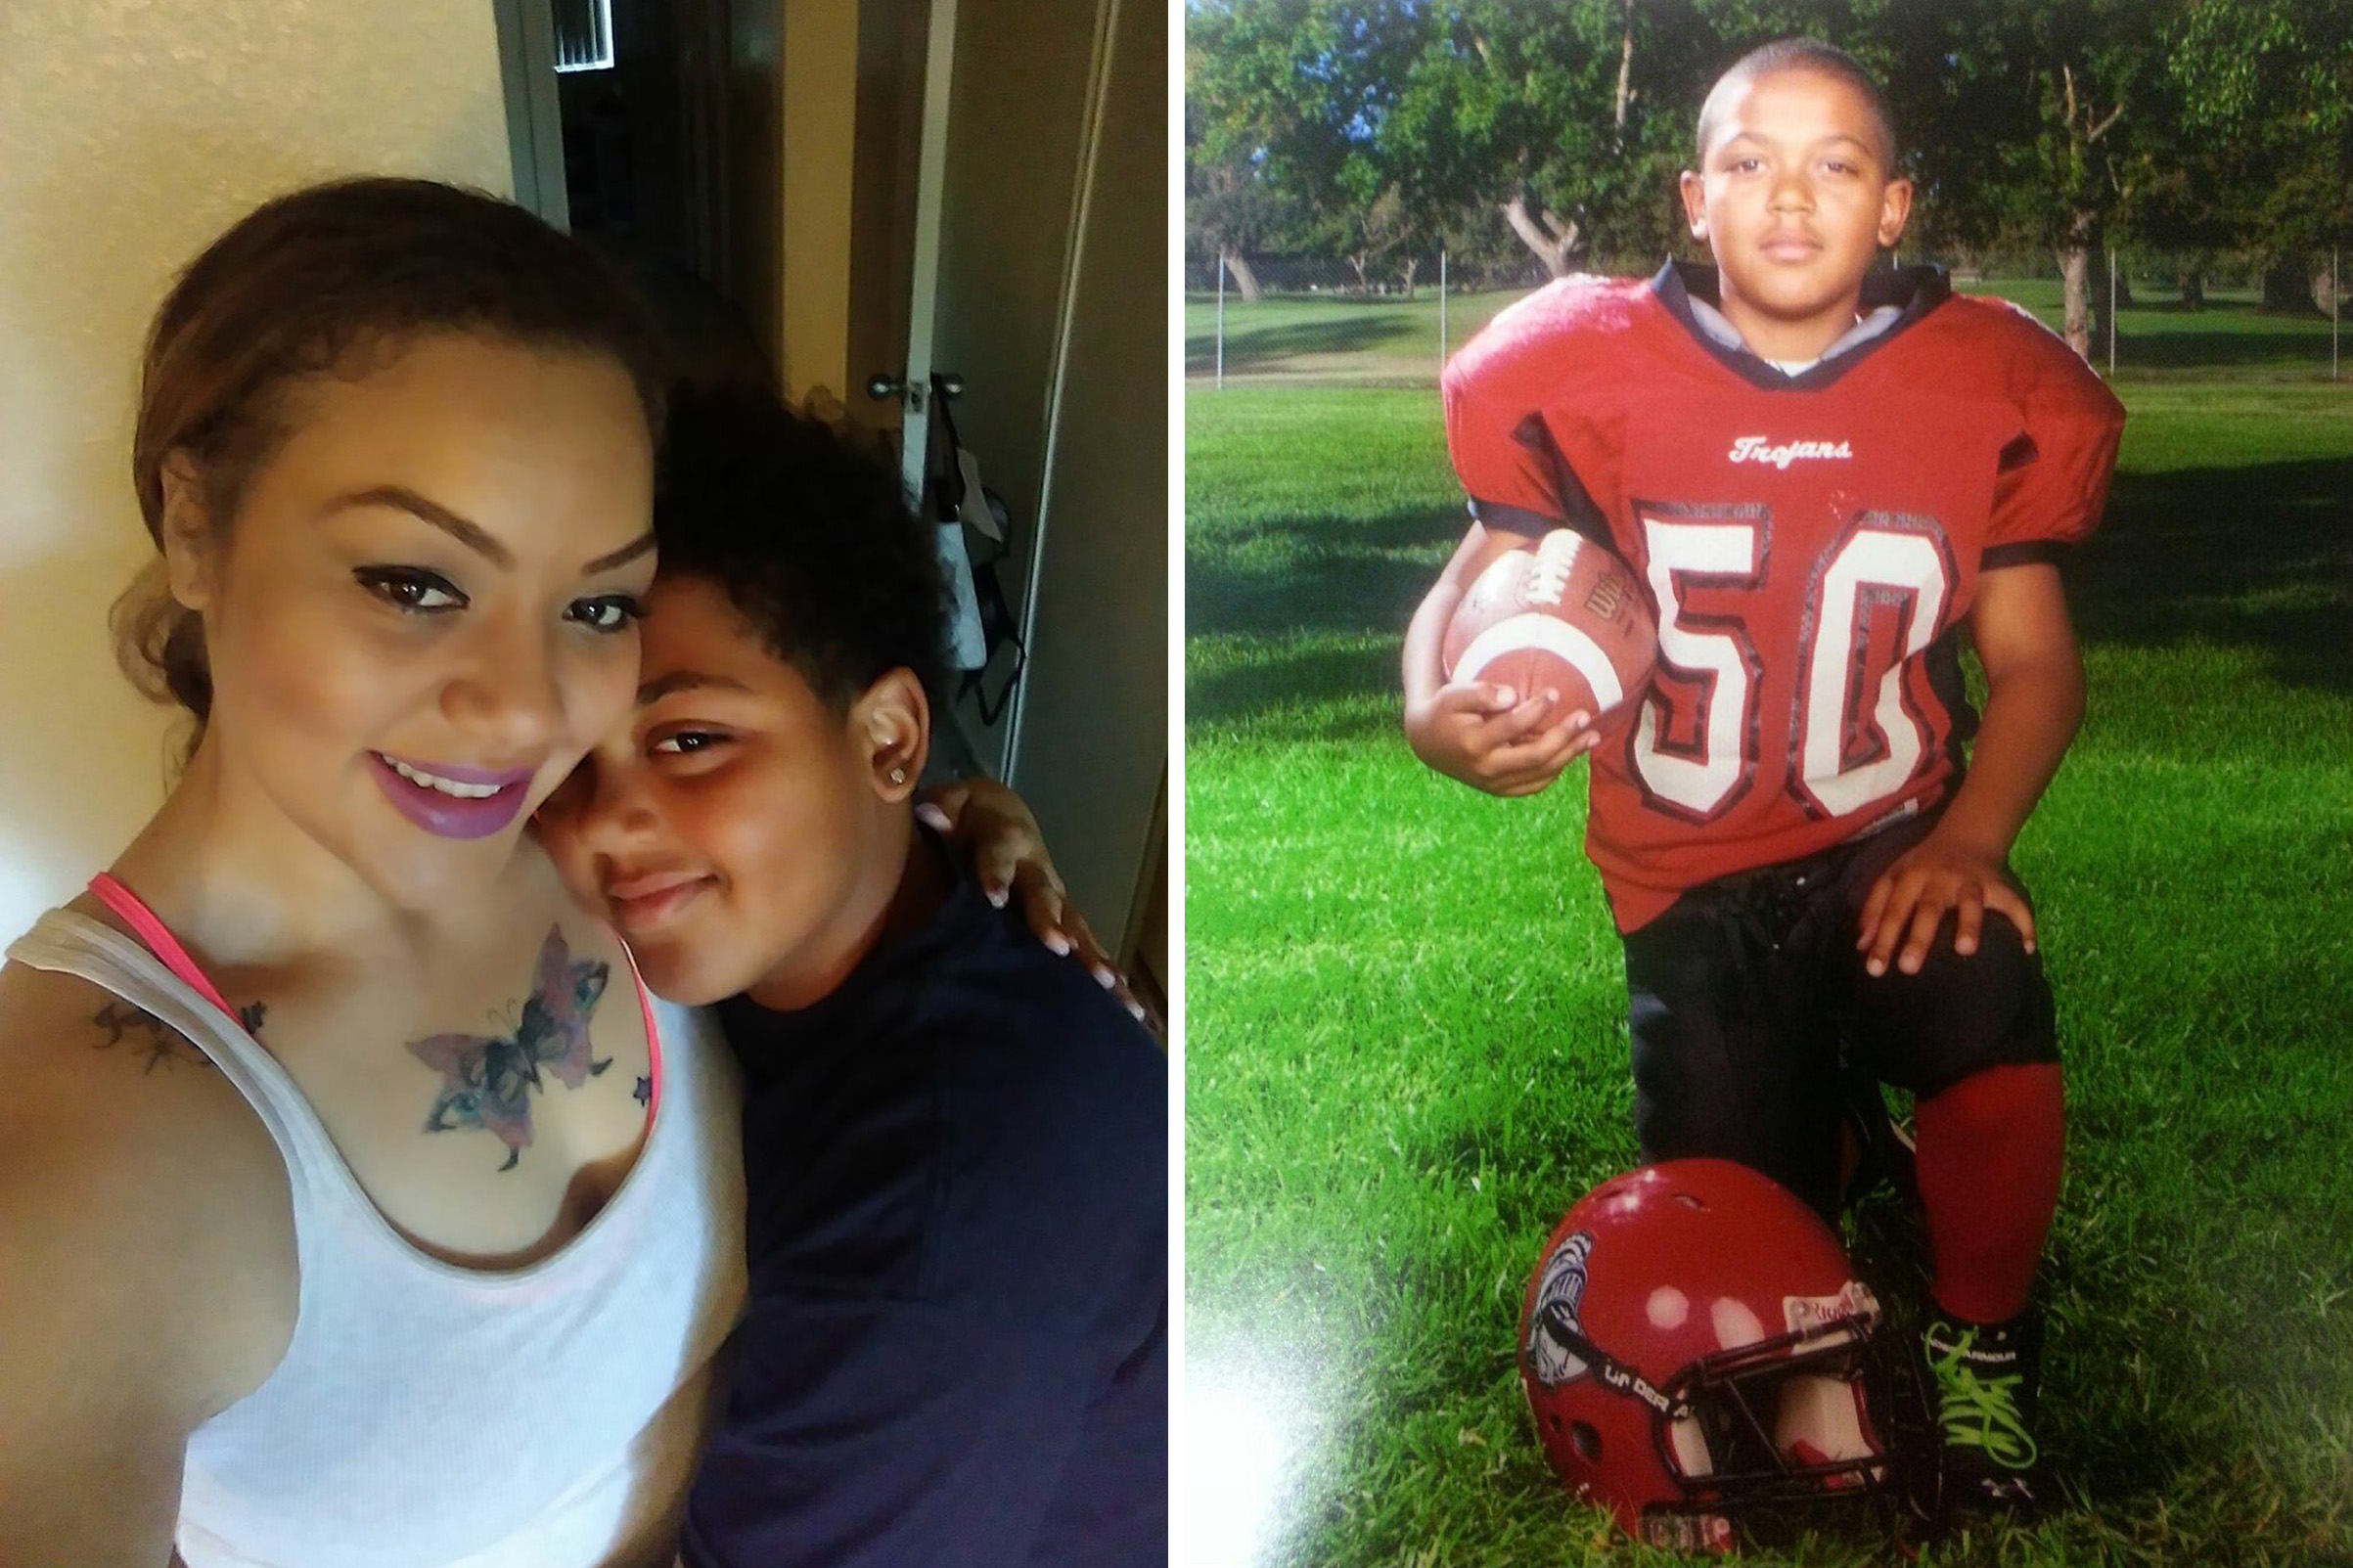 Left: Shynelle Jones and her son Jayden Galbert in the summer of 2017; Right: A portrait of Jayden Galbert when he played Pop Warner football for the Northwest Trojans.